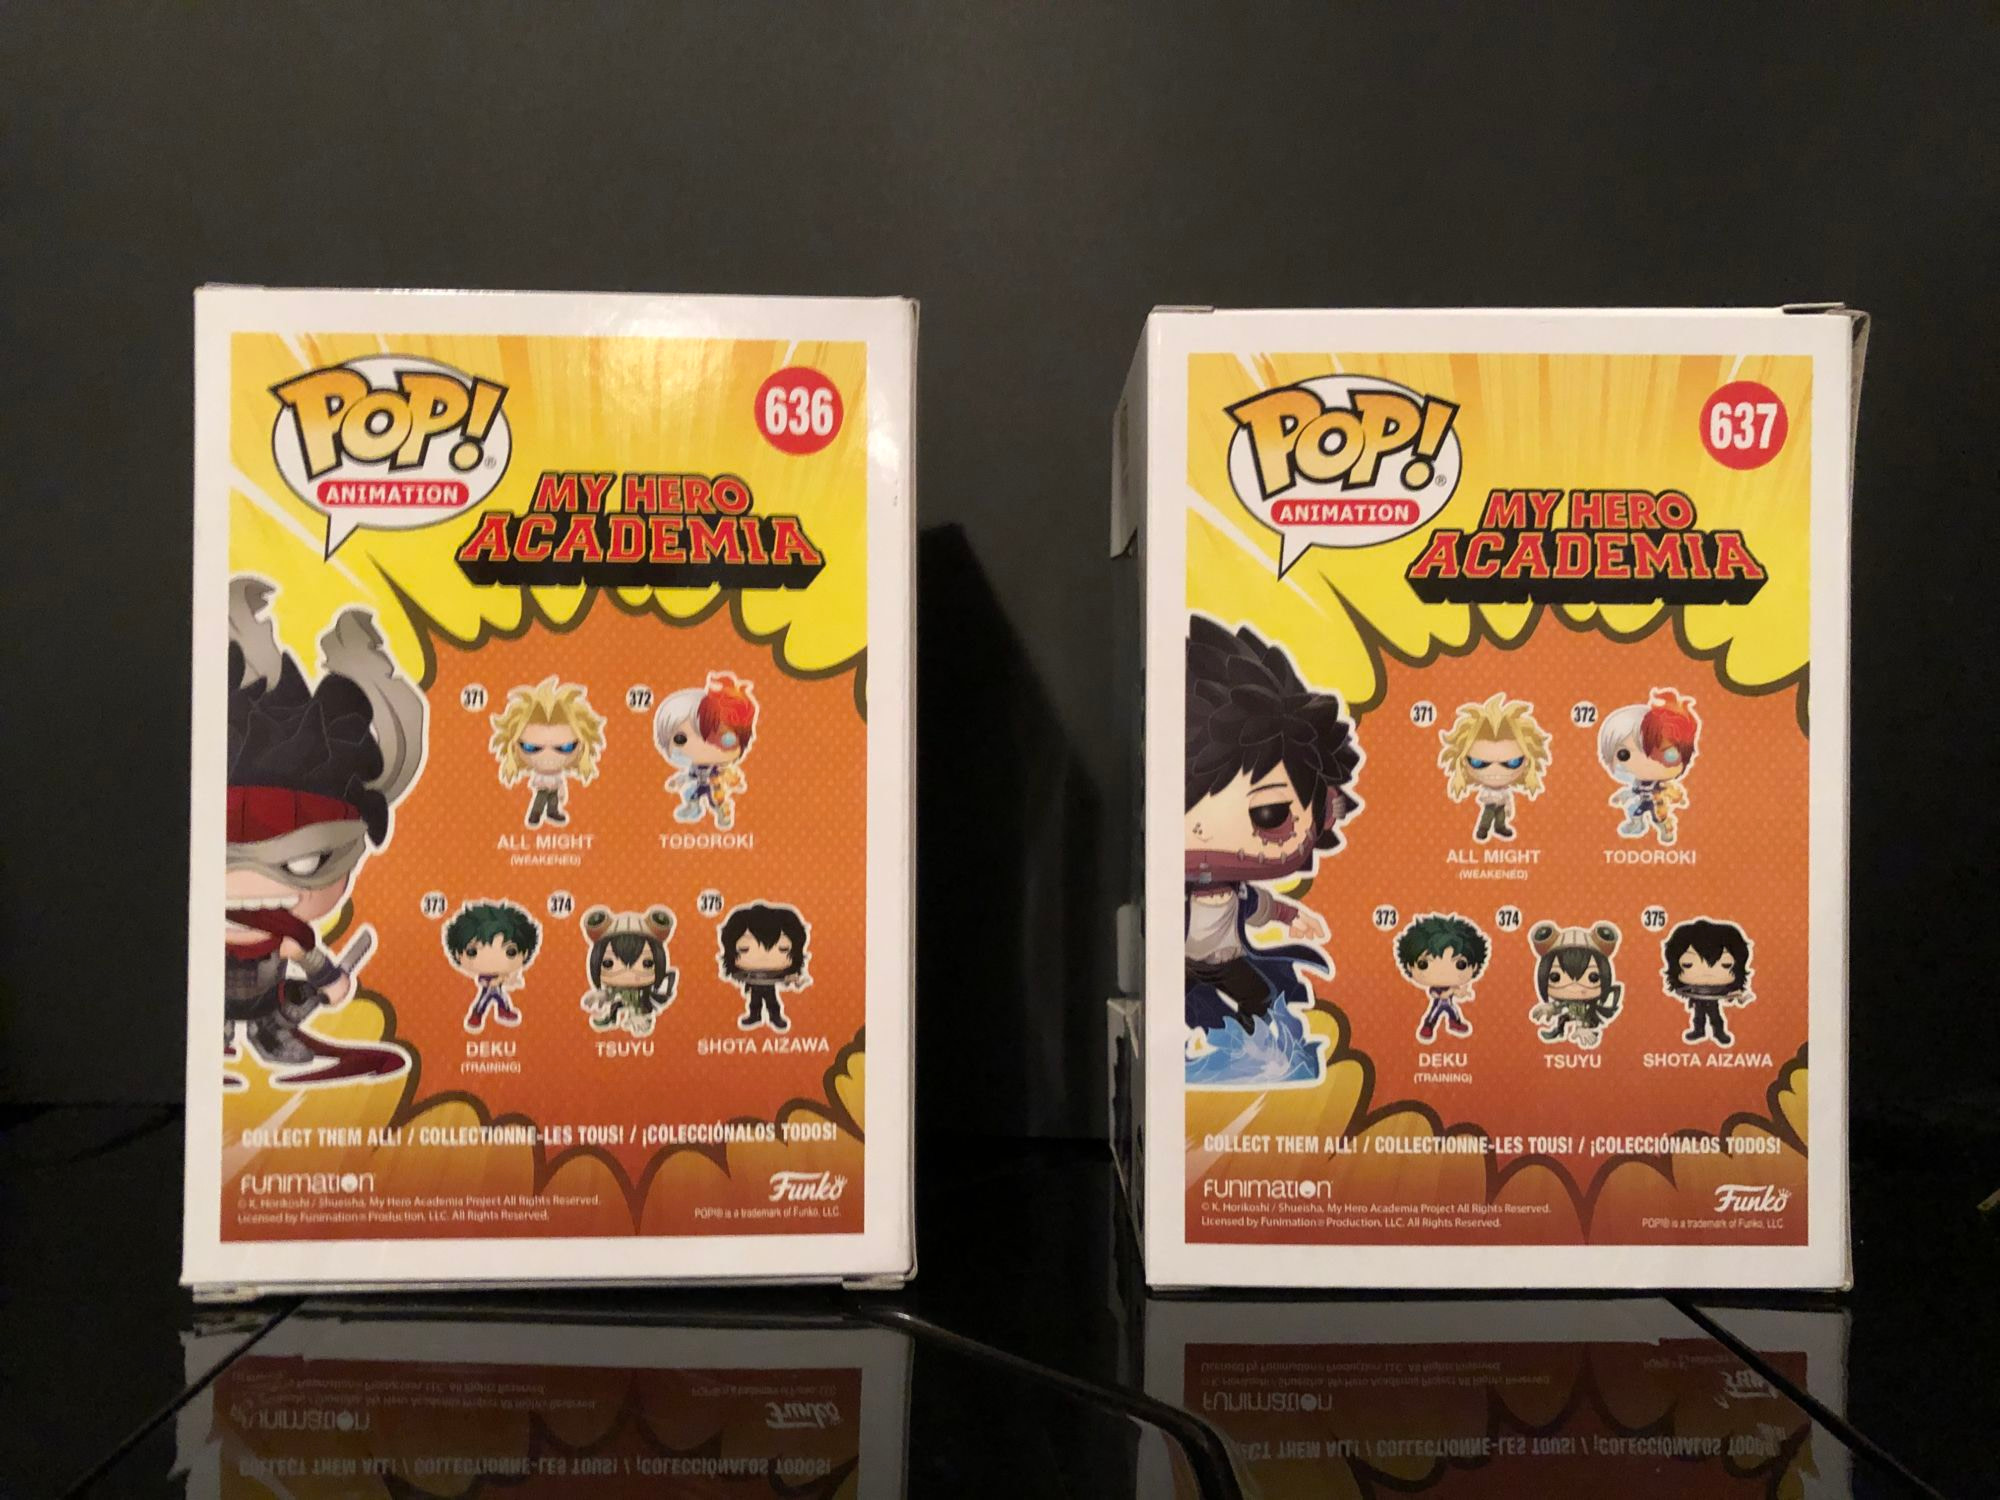 My Hero Villains Funko Pop Vinyls Get NYCC Exclusives [Review]